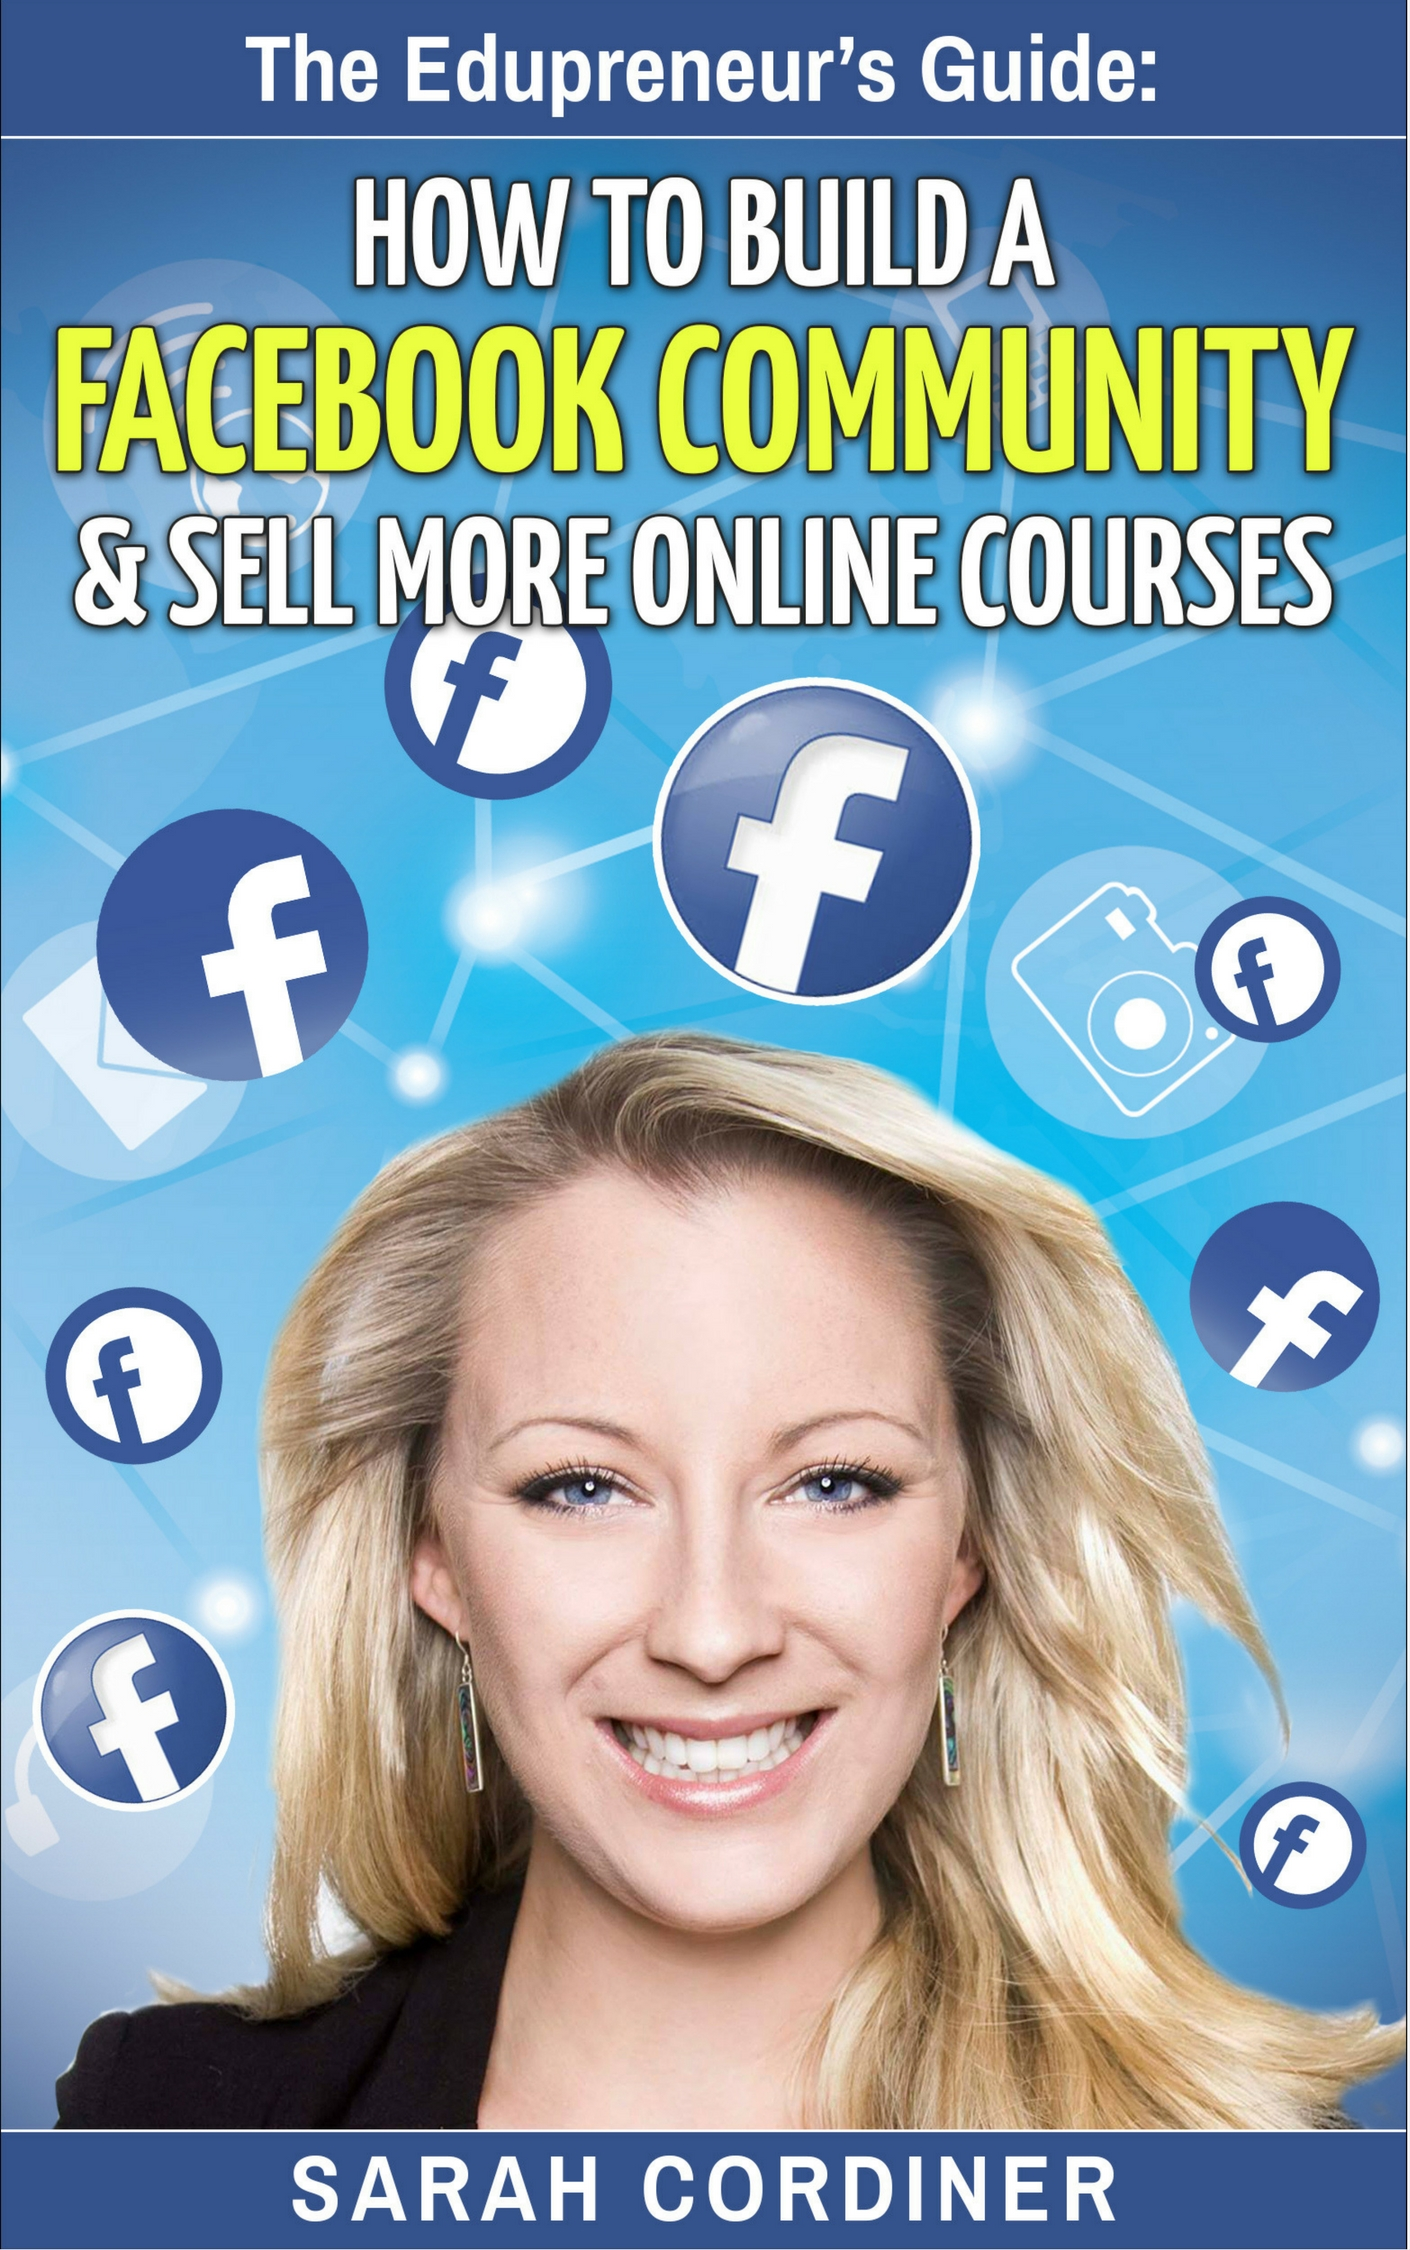 how to build a facebook community and sell more online courses - sarah cordiner